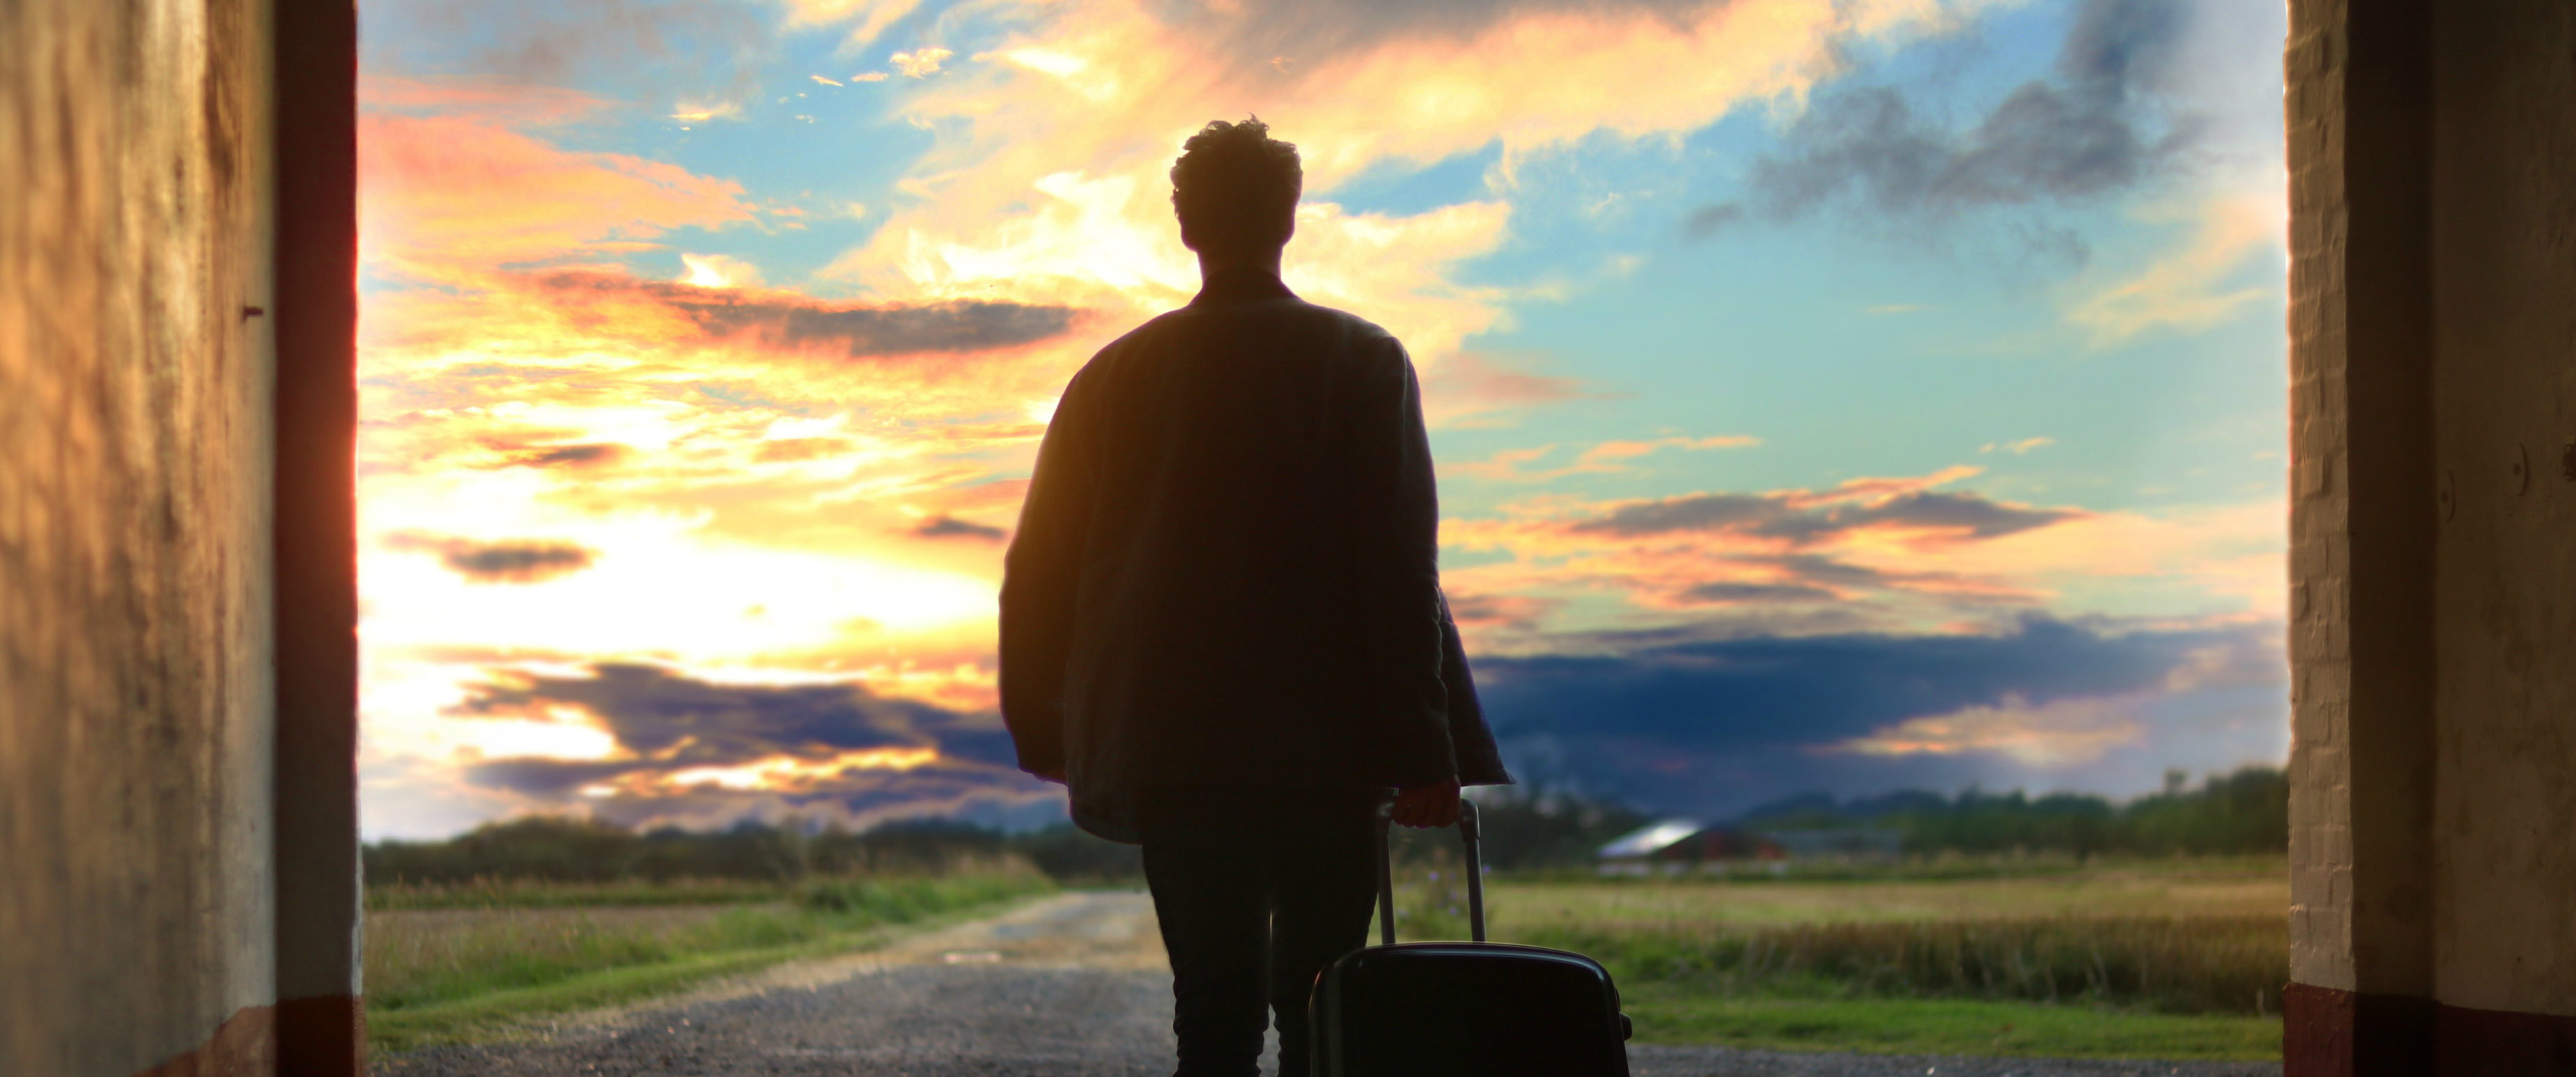 The Pros & Cons Of Long-Term Travel No One Ever Tells You About